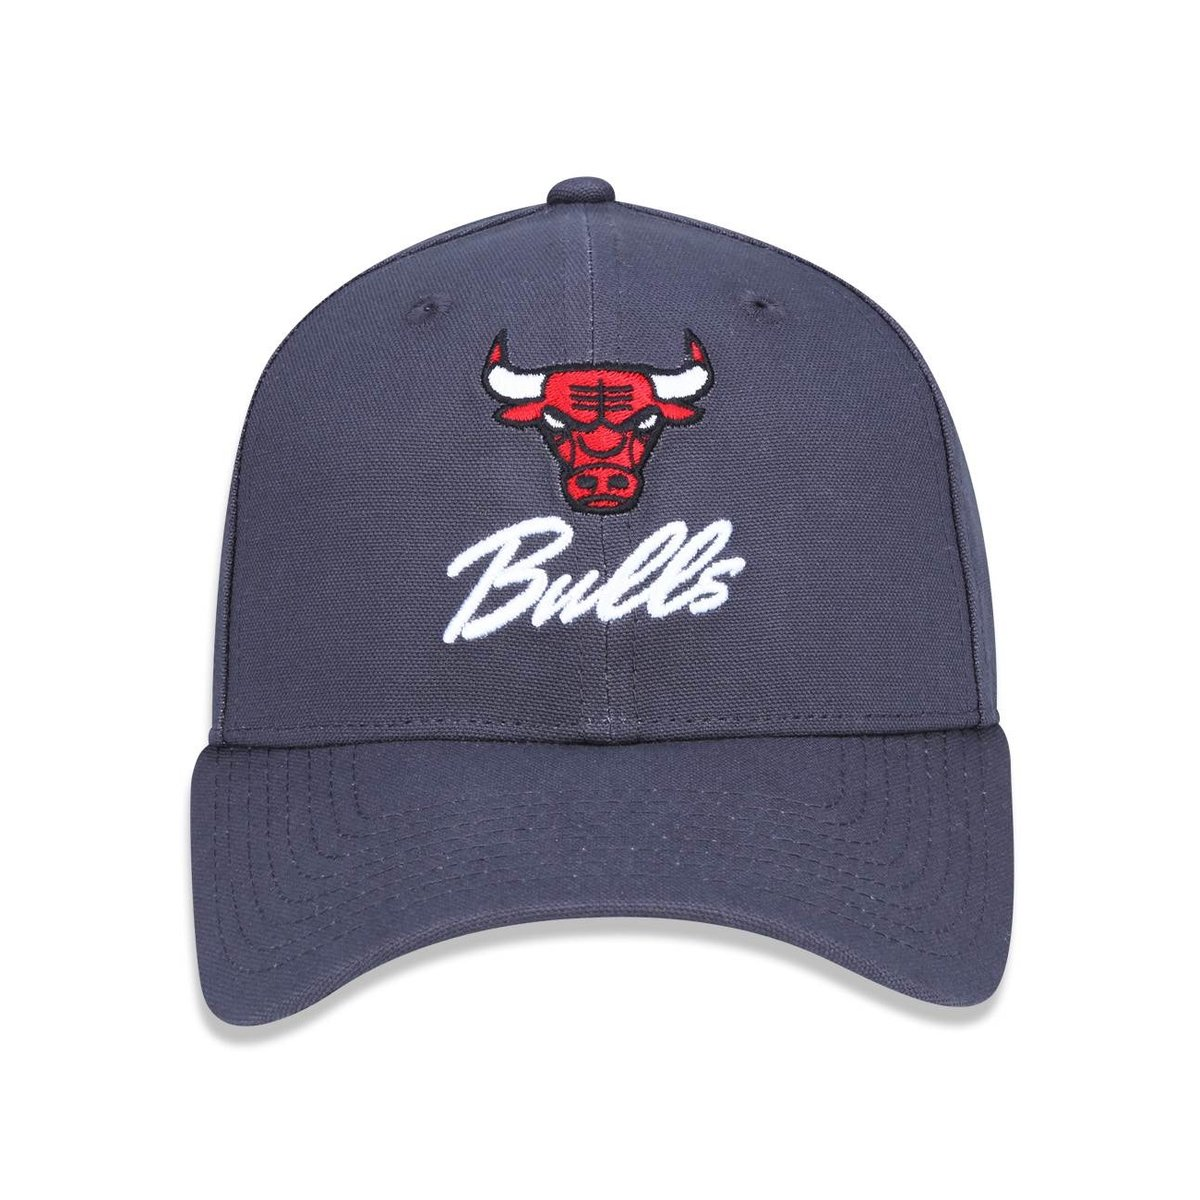 53c35be4f Boné 940 Chicago Bulls NBA Aba Curva Strapback New Era - Compre ...